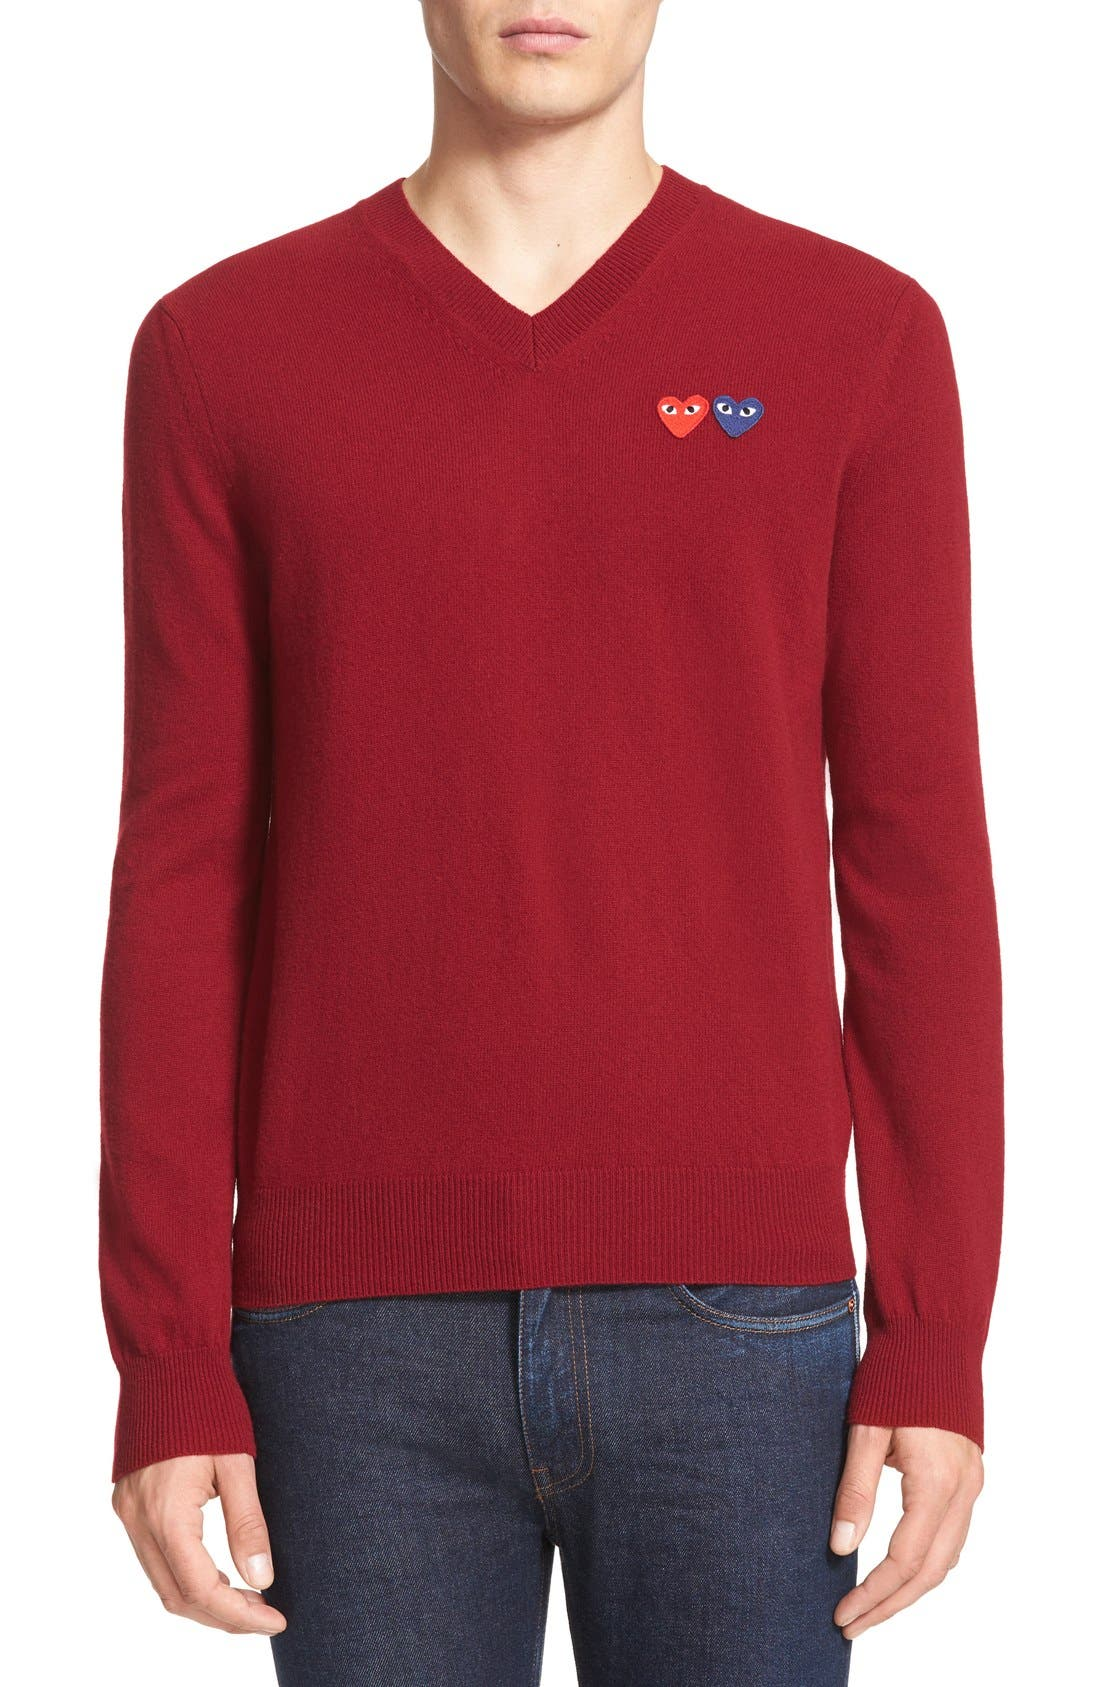 Men's Red Sweaters Designer Clothing & Accessories   Nordstrom